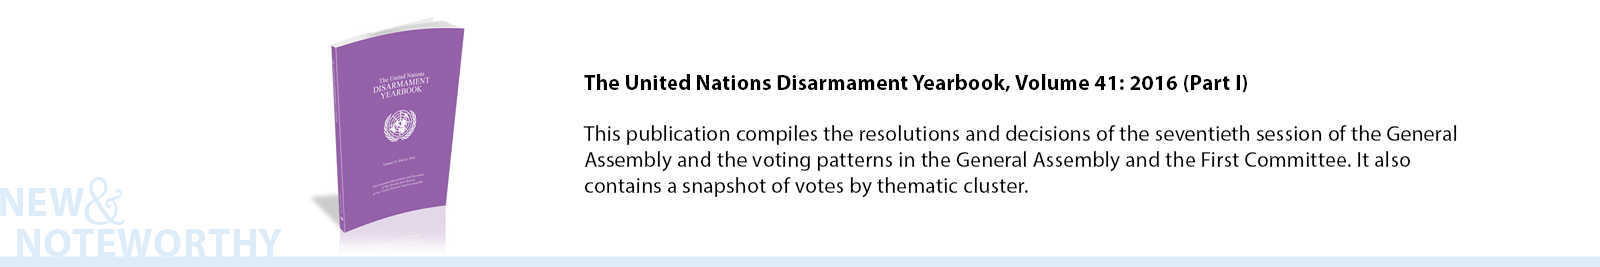 Compiles the disarmament resolutions and decisions of the seventy-first session of the General Assembly, the voting patterns in the General Assembly and the First Committee report and dates of their adoption. Contains a snapshot of votes by thematic cluster of resolution numbers, titles and votes in the seventy-first session of the General Assembly and in the First Committee.